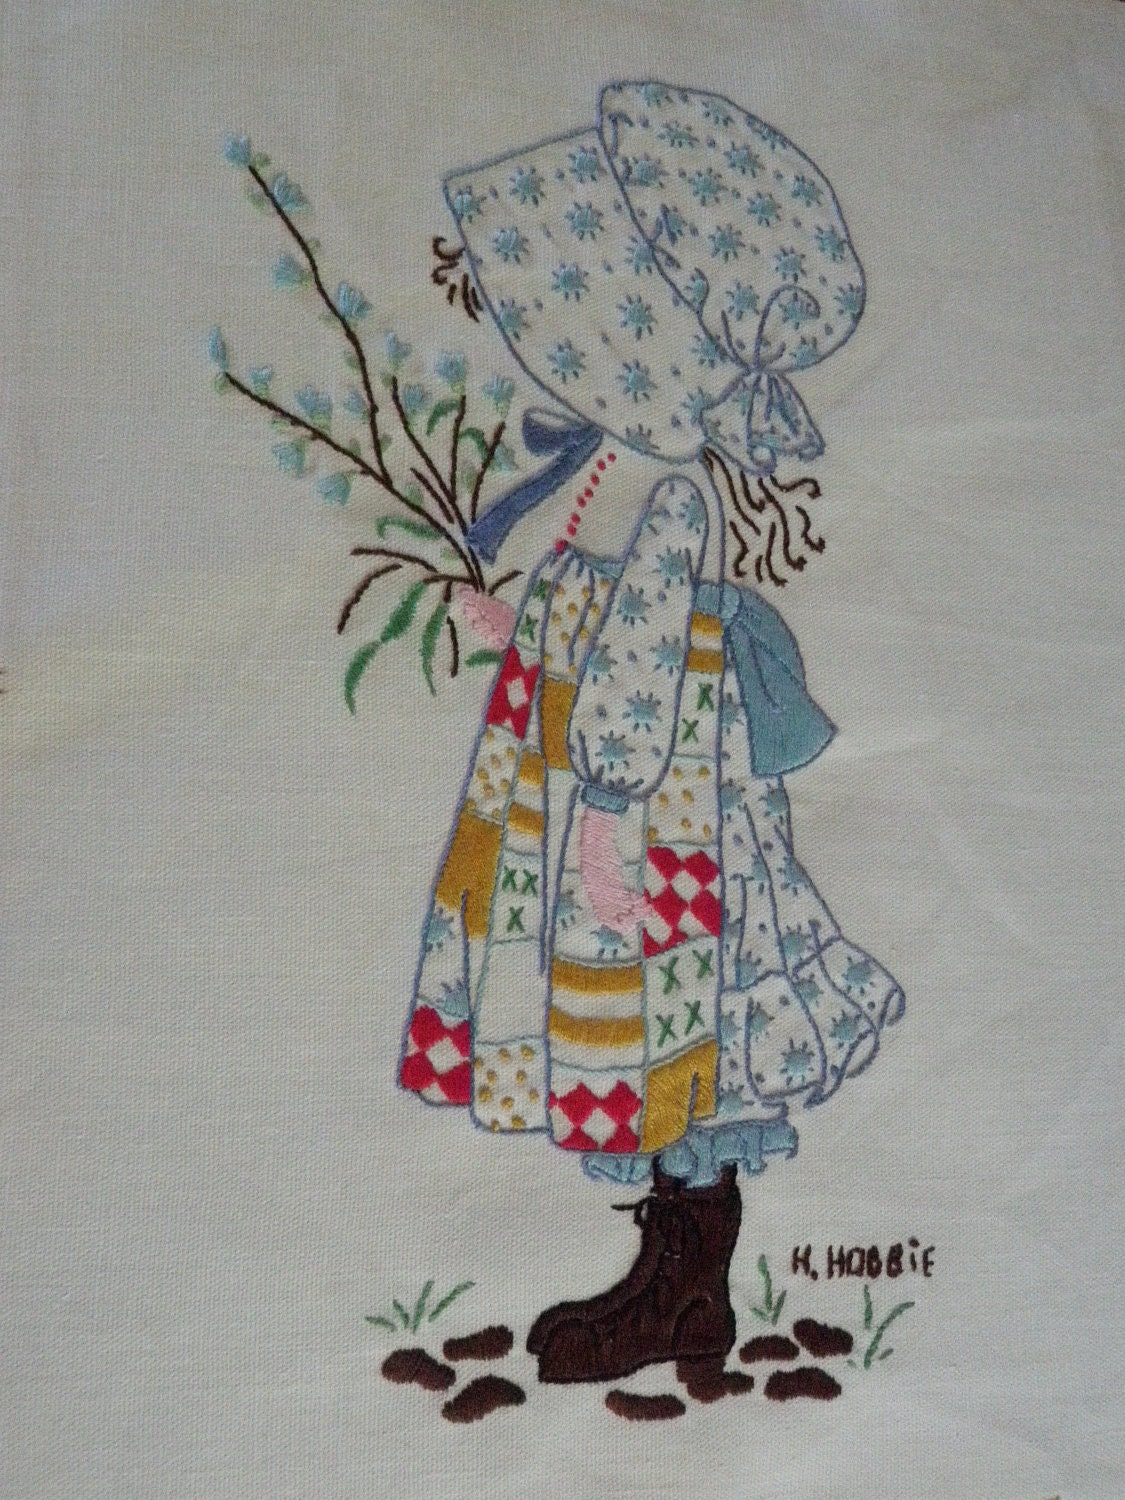 Holly hobbie vintage embroidery wall hanging